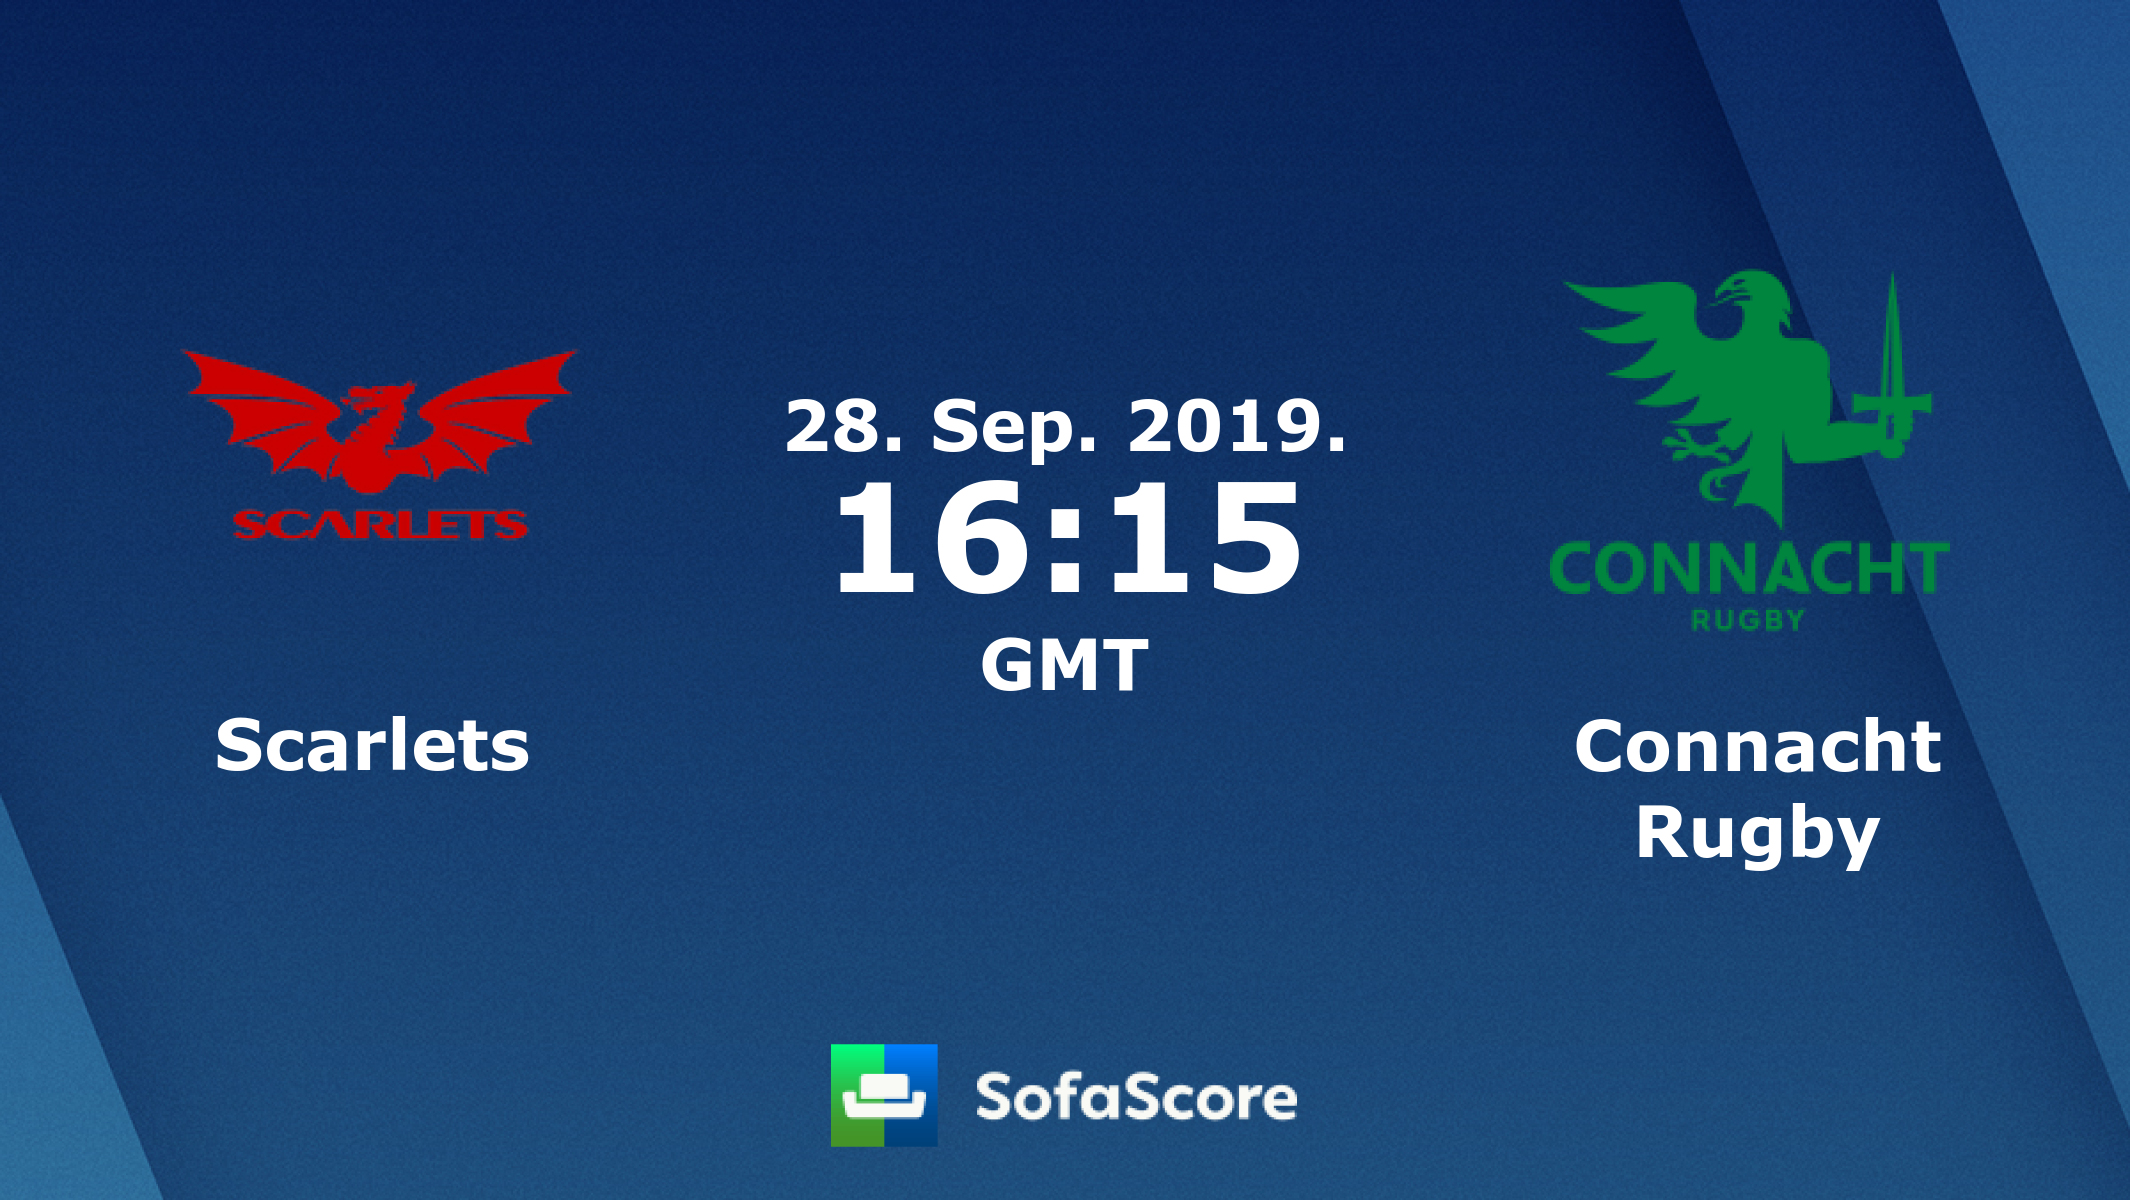 Scarlets Connacht Rugby live score, video stream and H2H